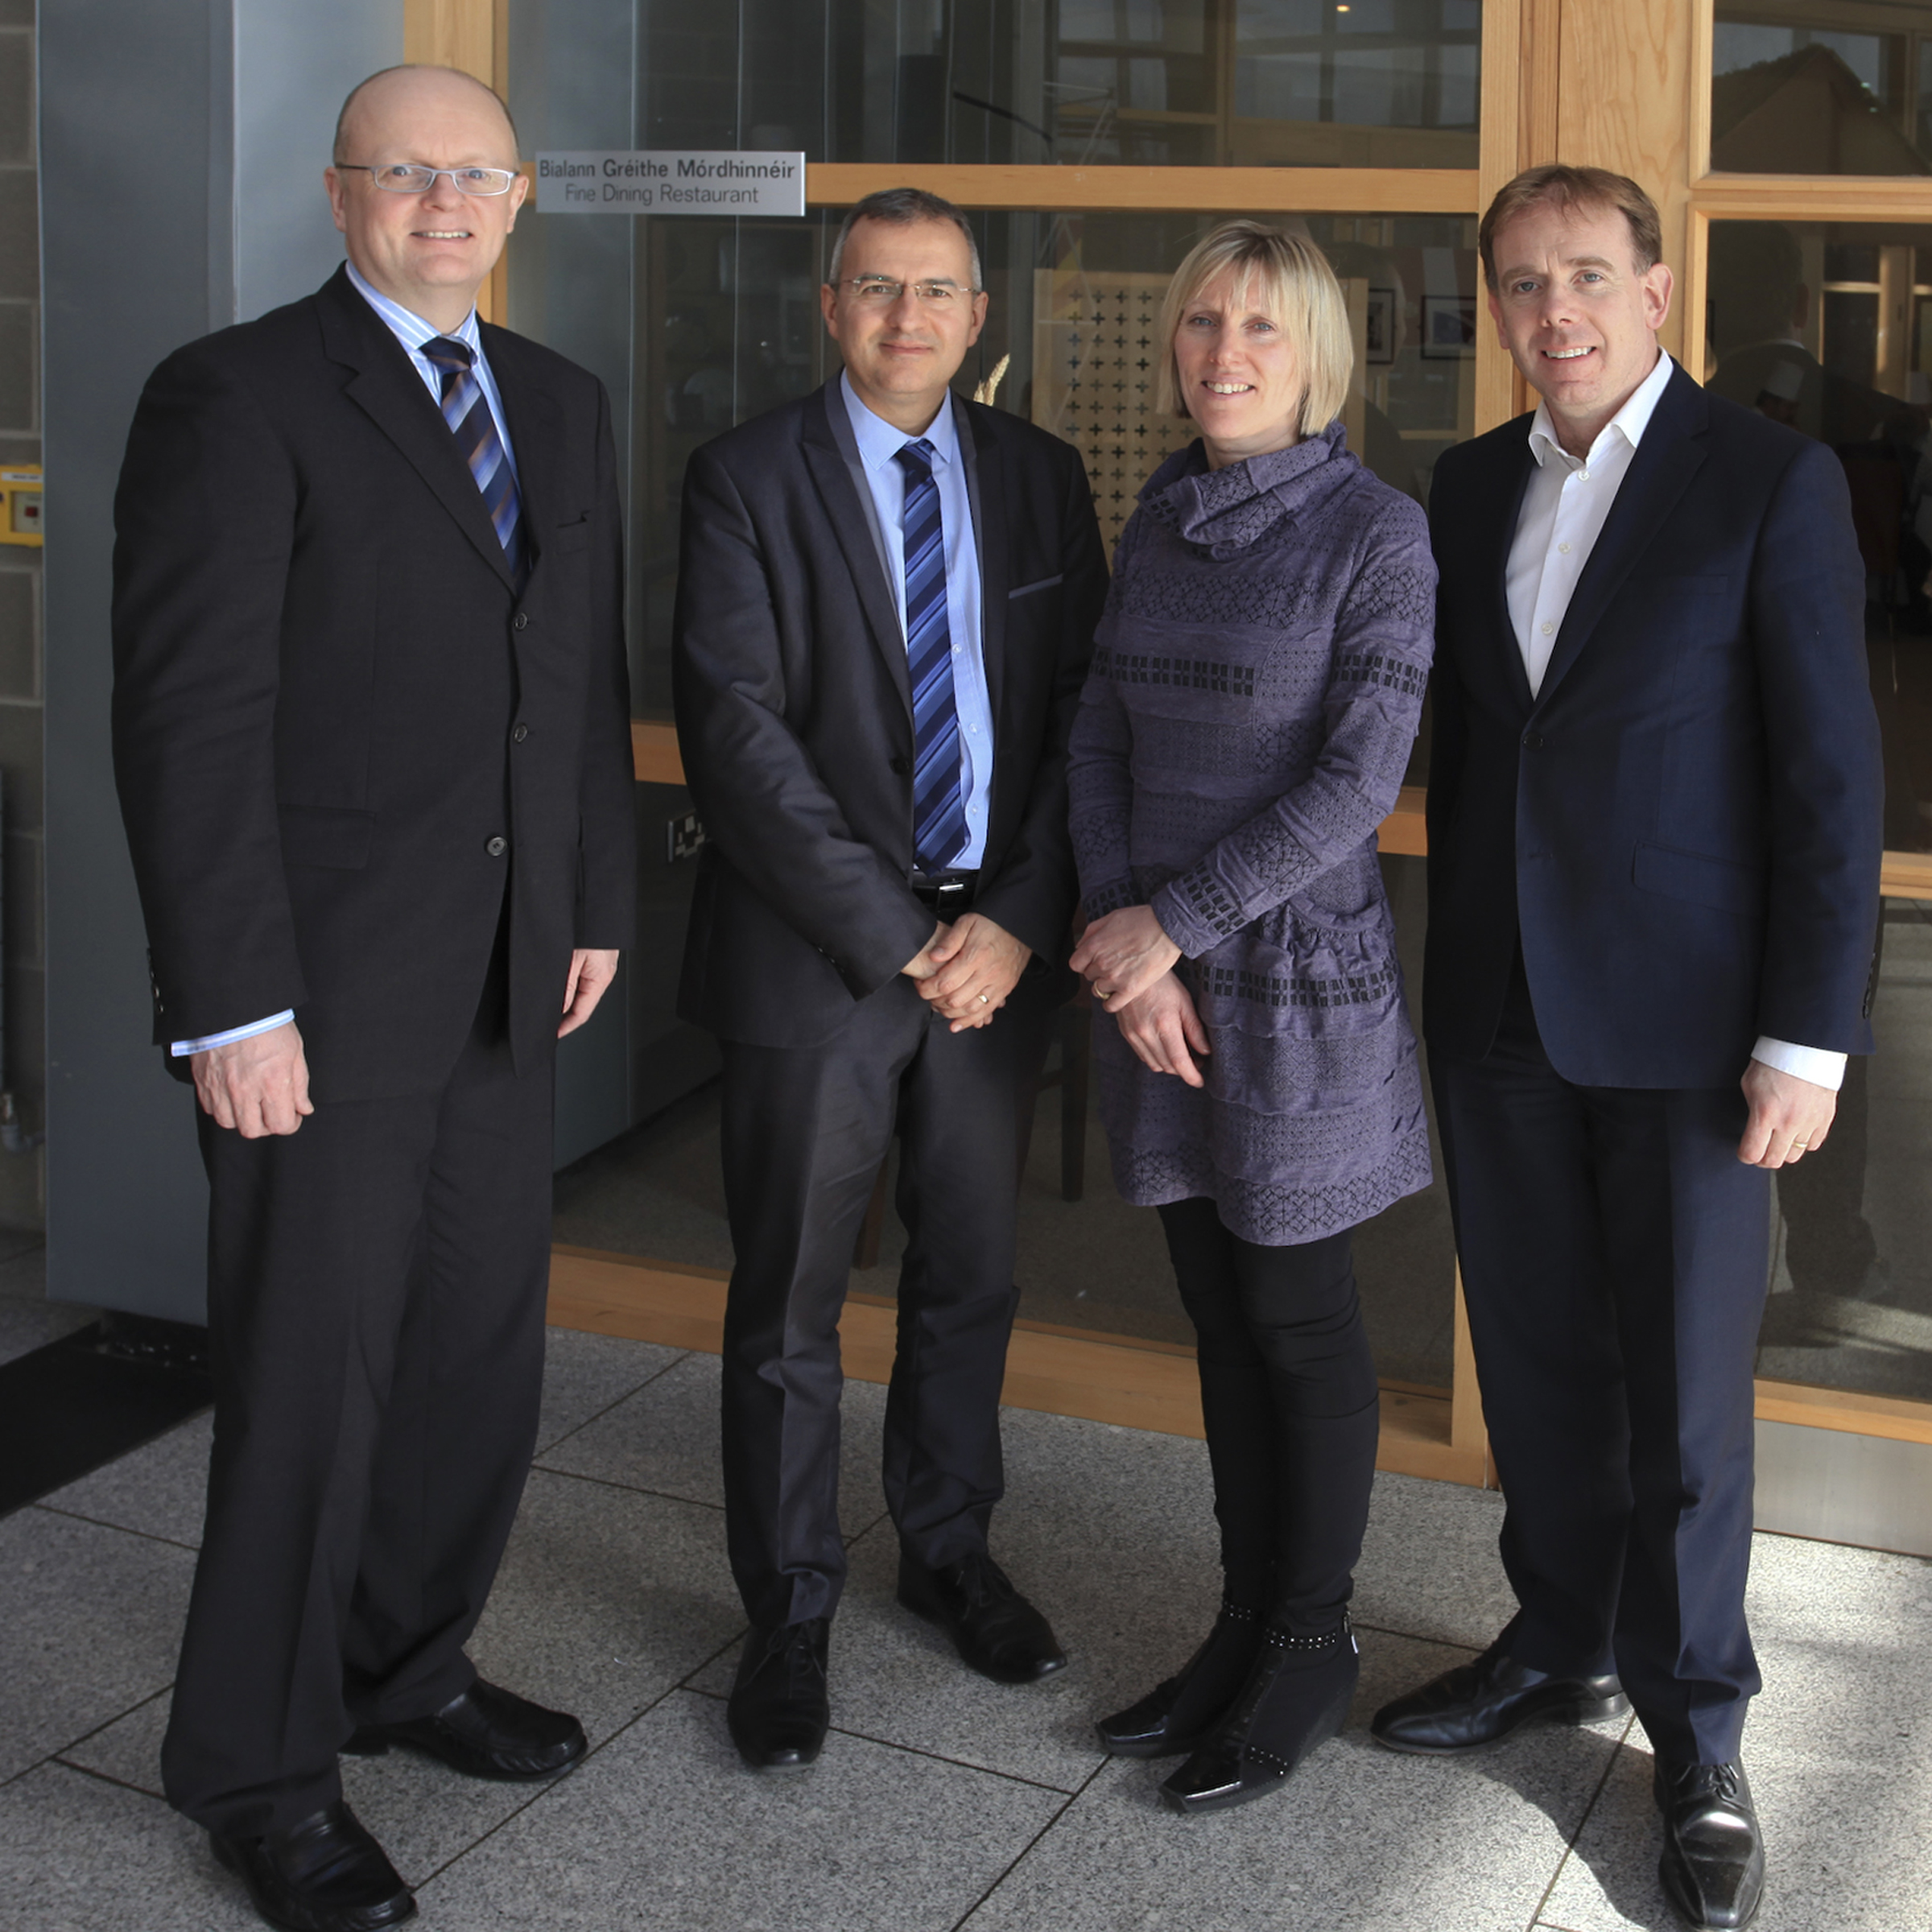 From left: Dr Tom O'Toole, Stéphane Aymard (French Embassy), Sinead Day, Don O'Neill